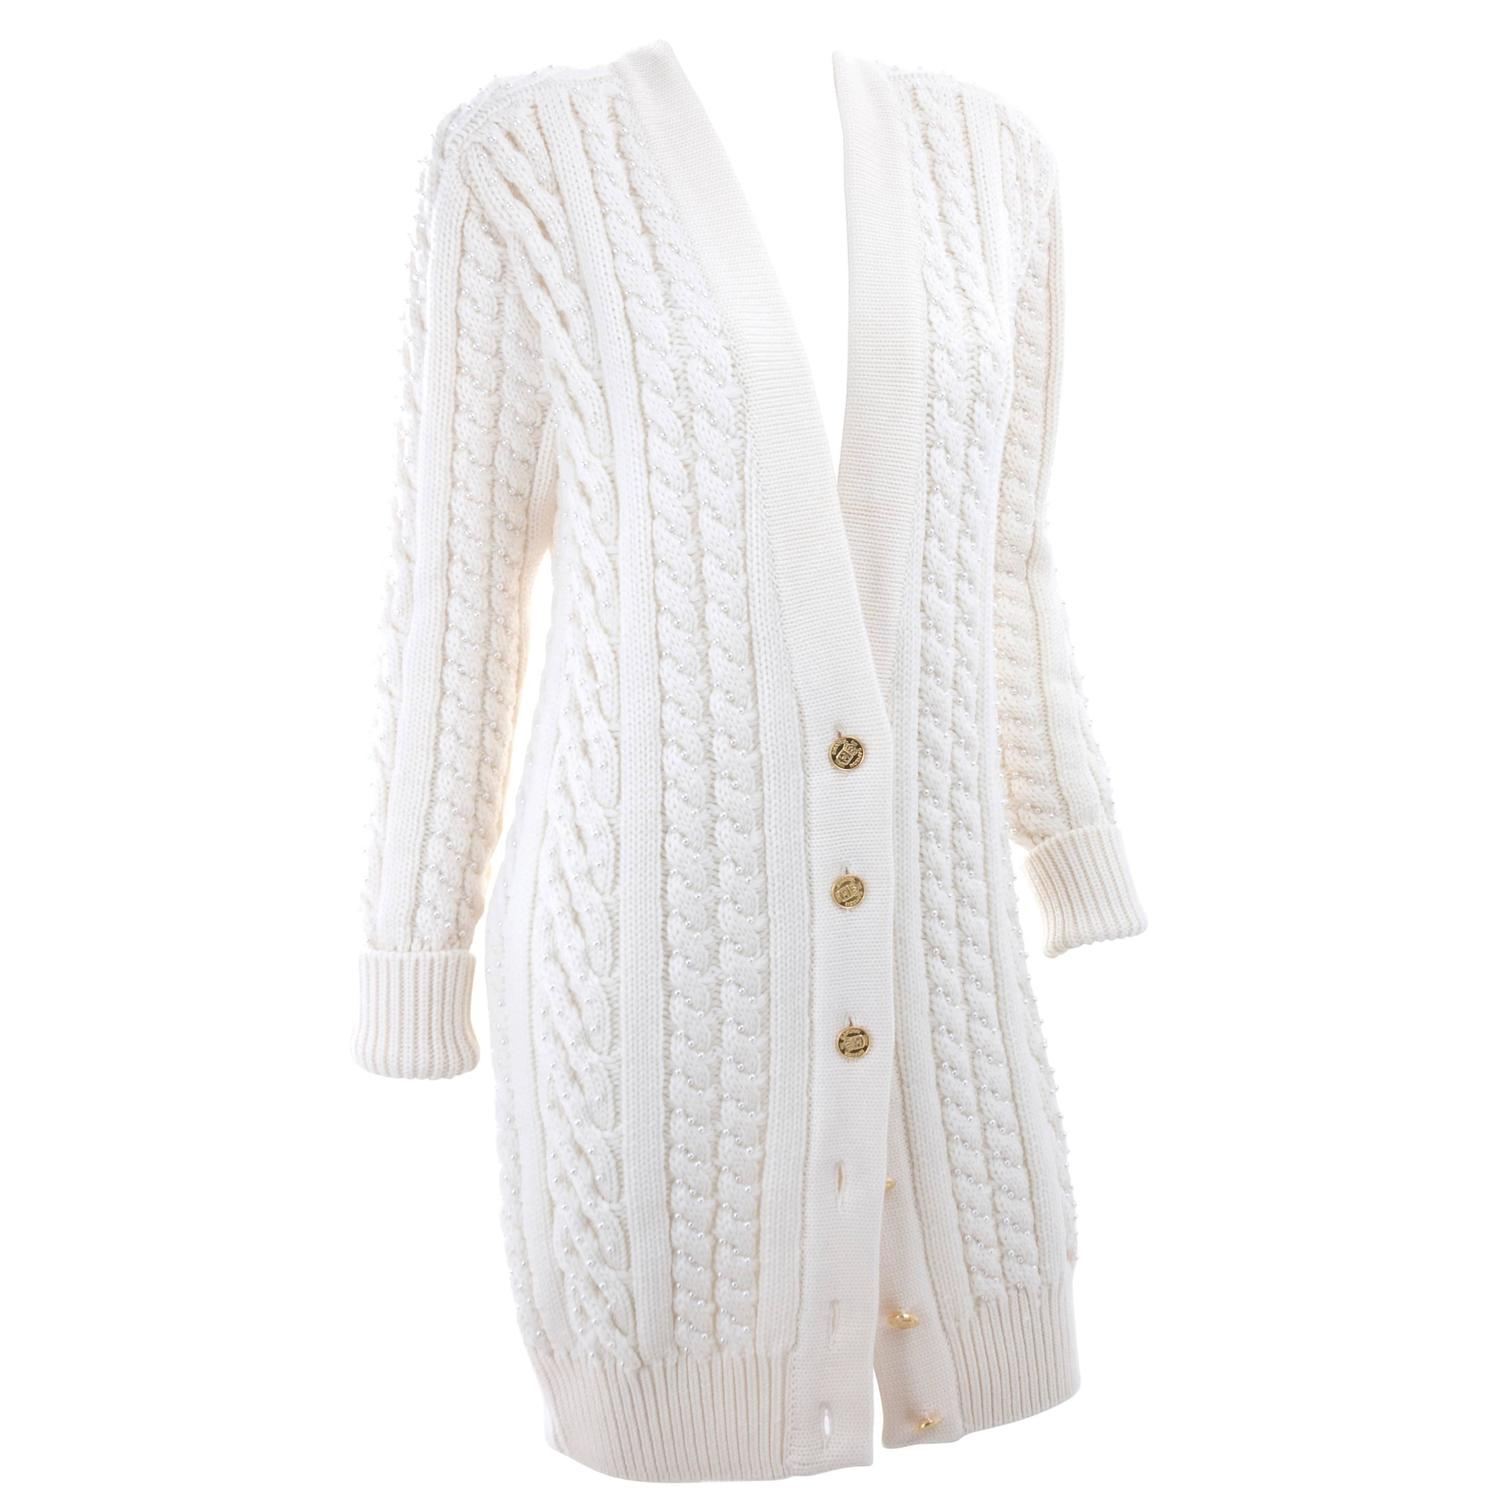 Vintage CHANEL Pearl Encrusted Cable Knit Cardigan in Creme sz ...